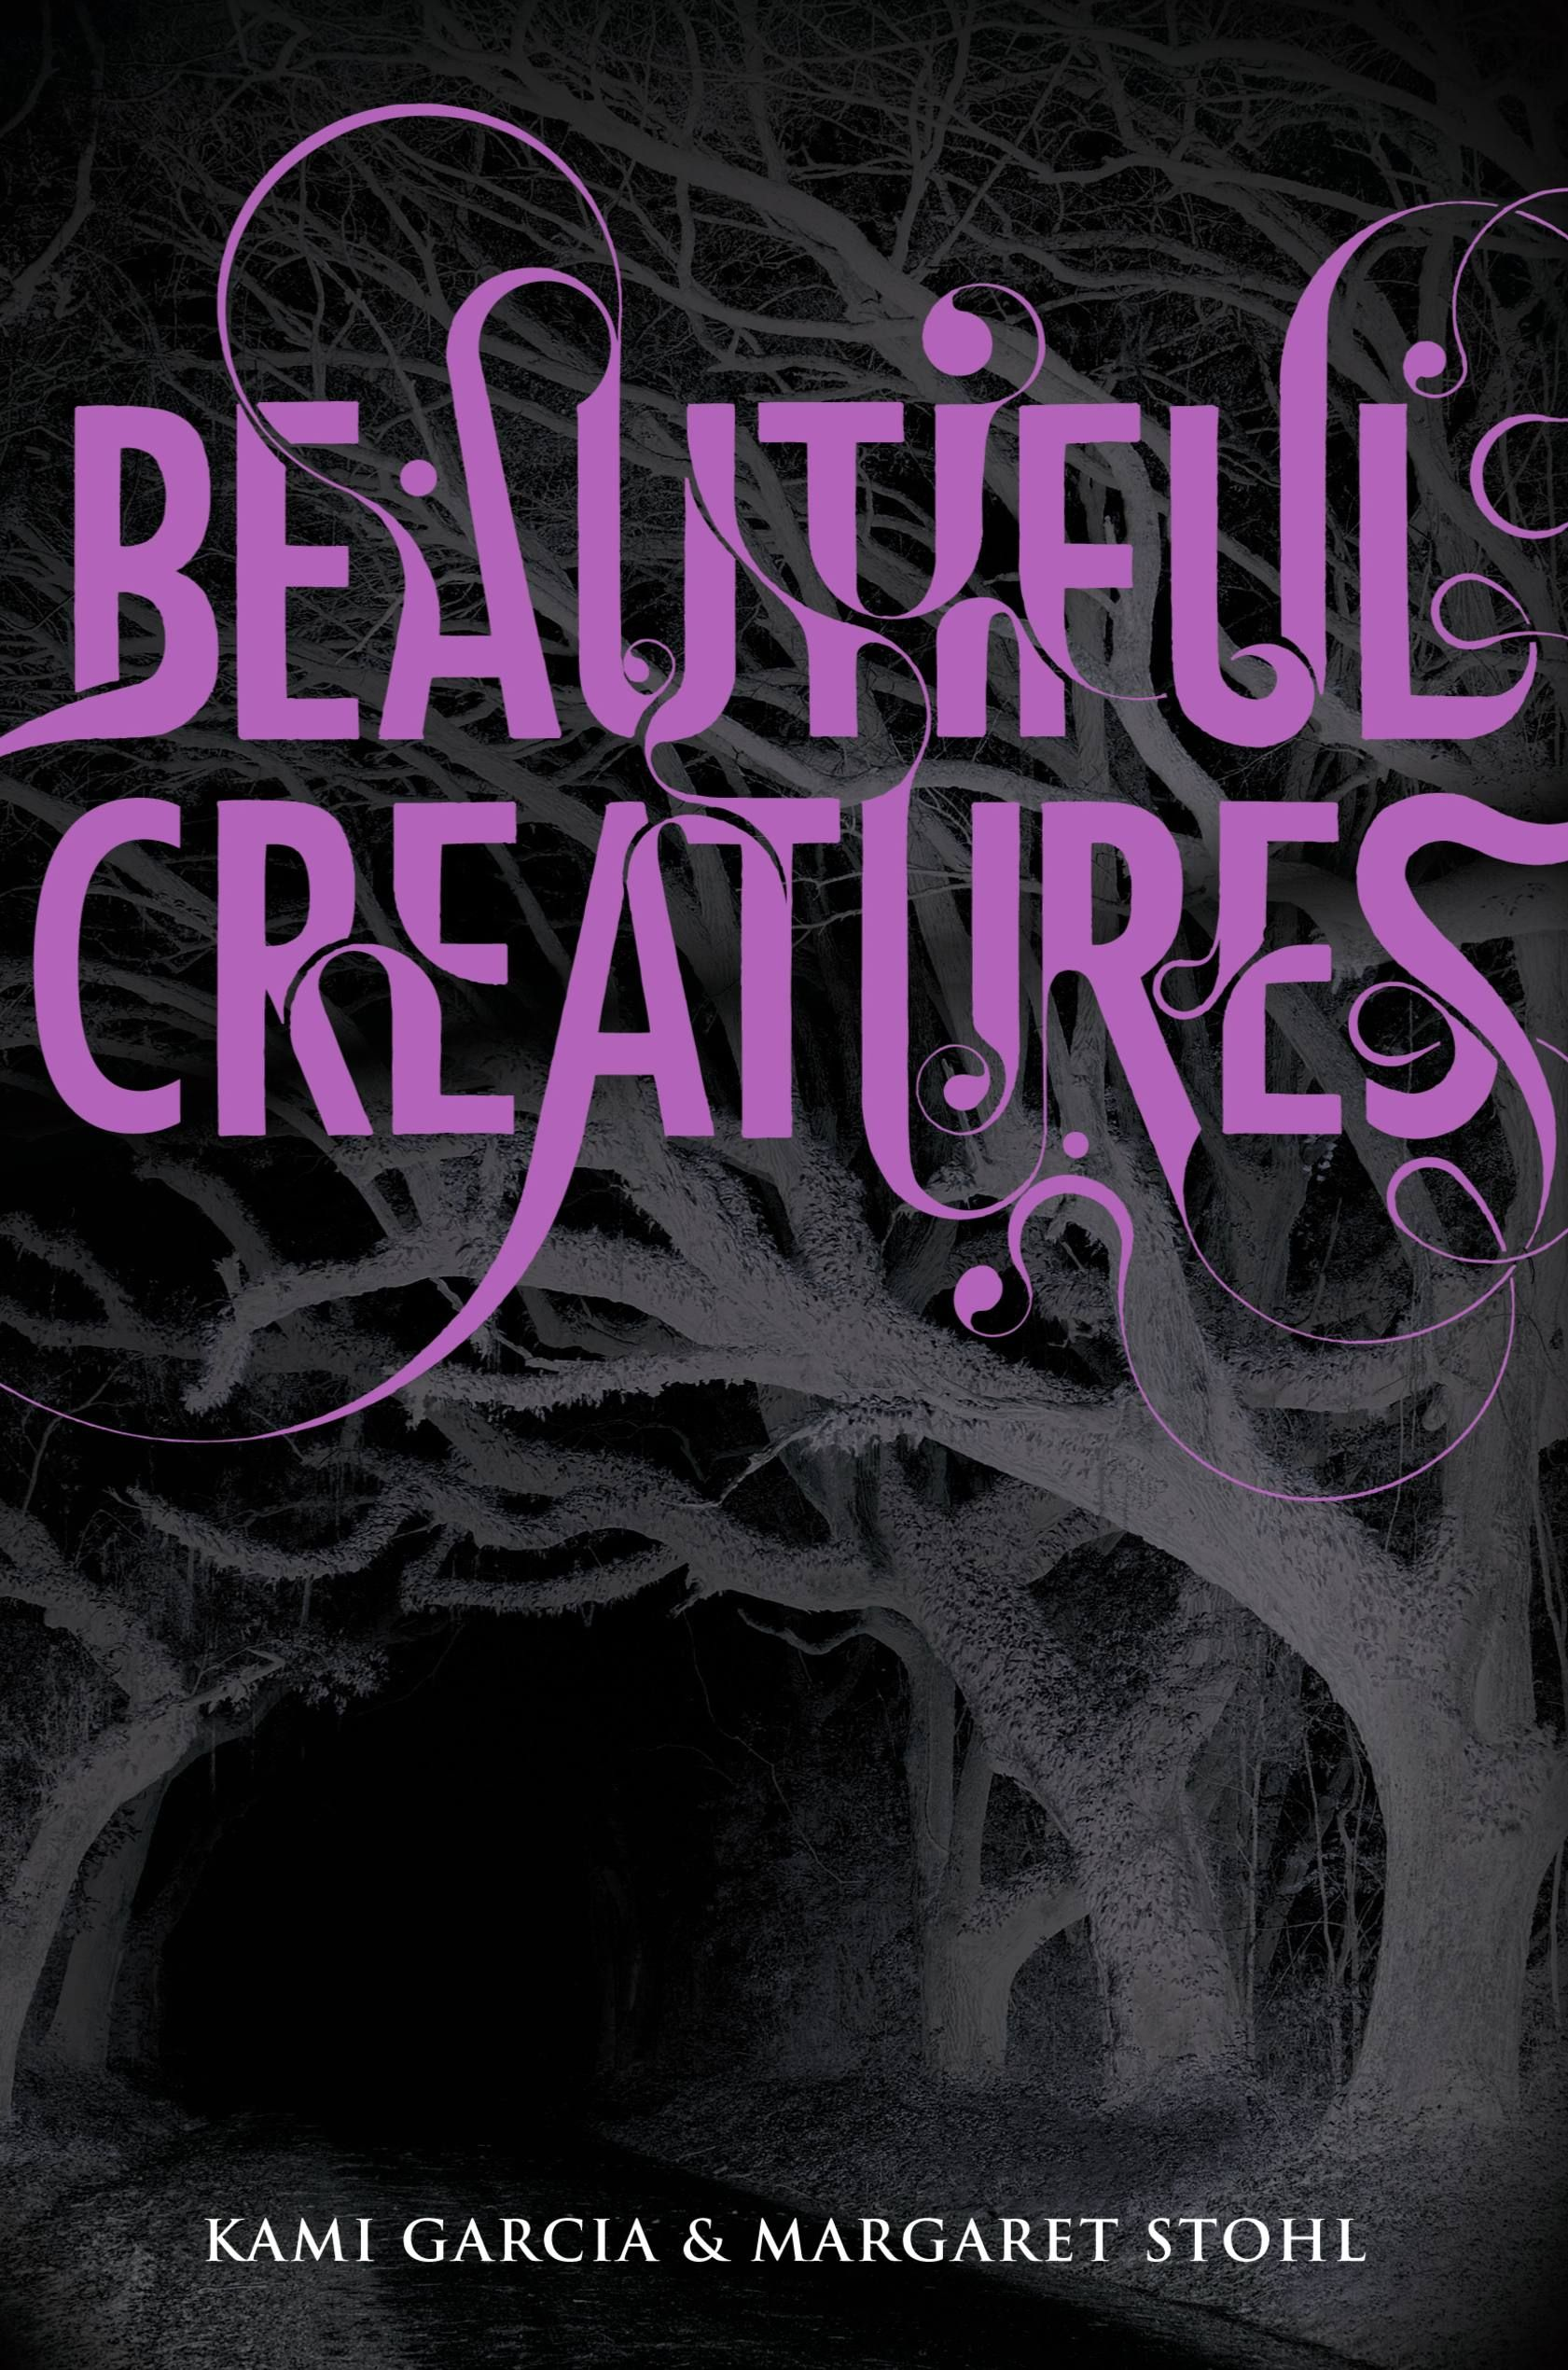 Beautiful Creatures , by Kami Garcia & Margaret Stohl